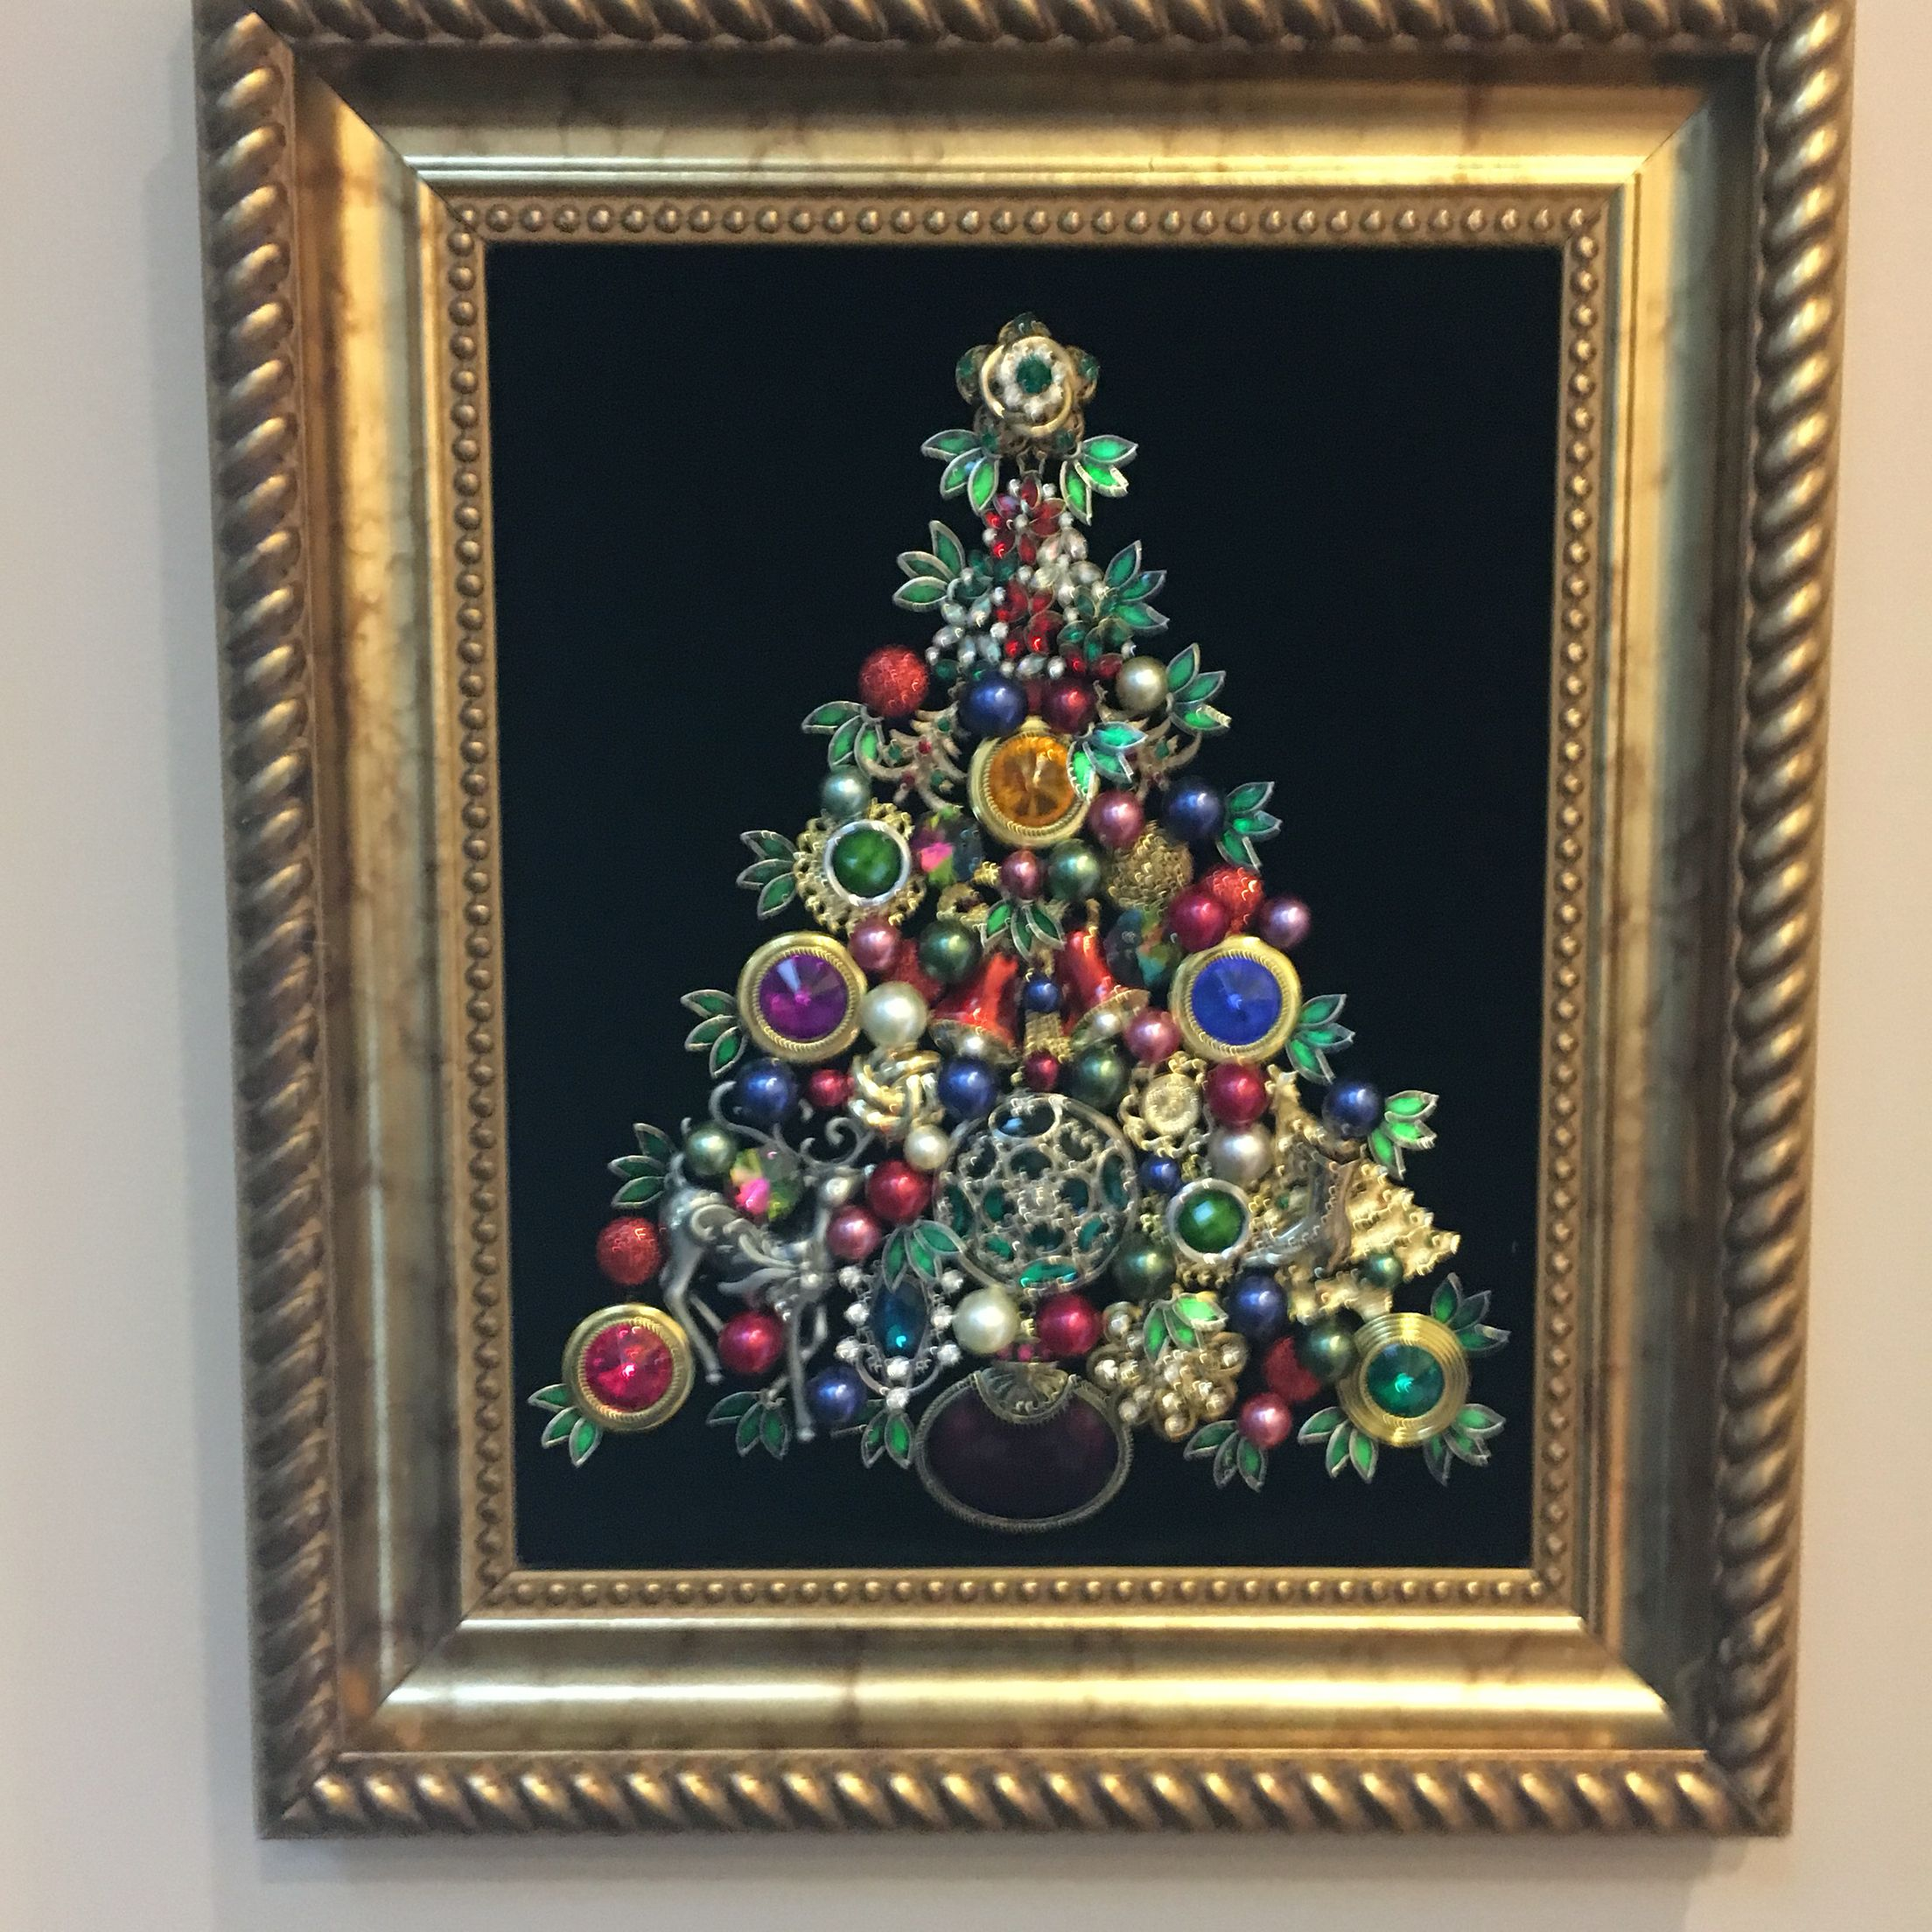 8x10 Jewelry Tree By Beth Turchi 2015 Jewelry Costume